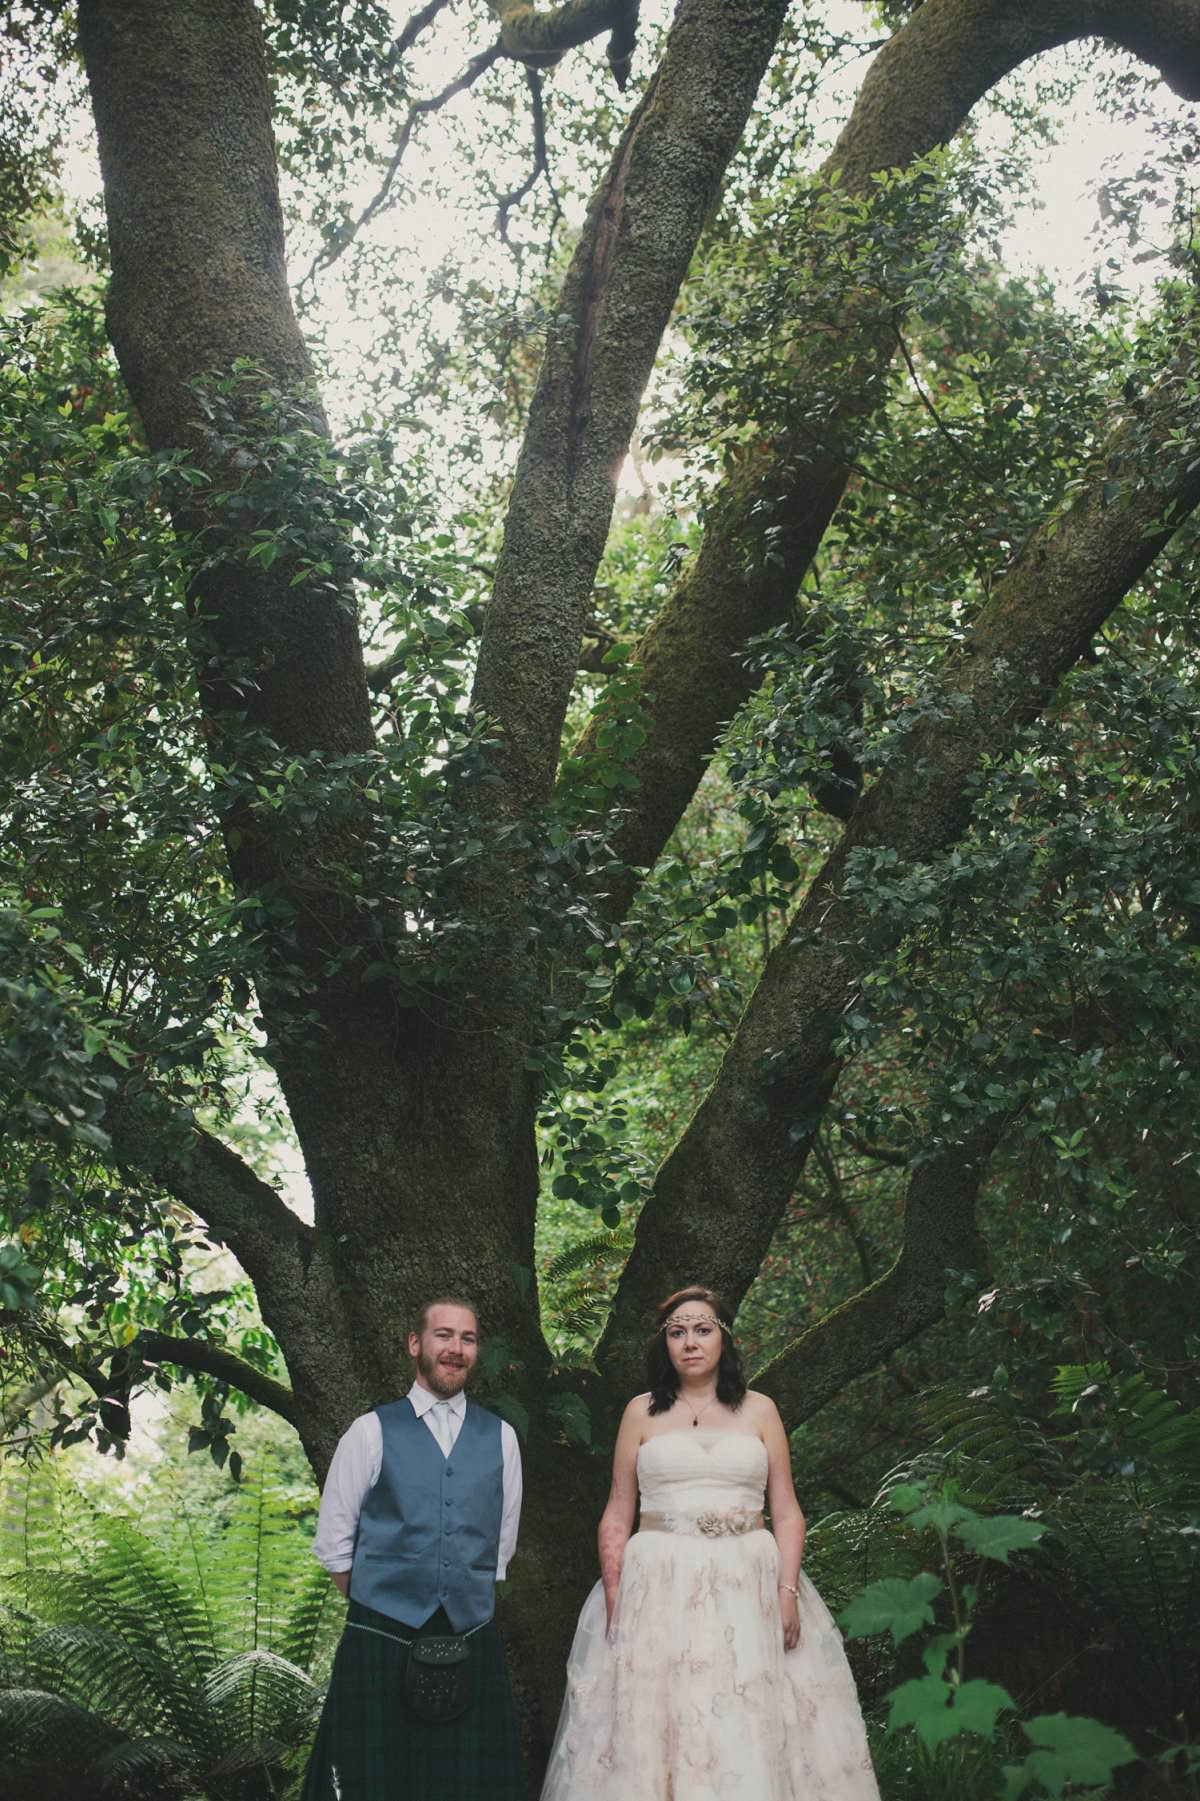 Bride and groom by tree in Brodick Castle gardens on The Isle of Arran Scotland during elopement wedding